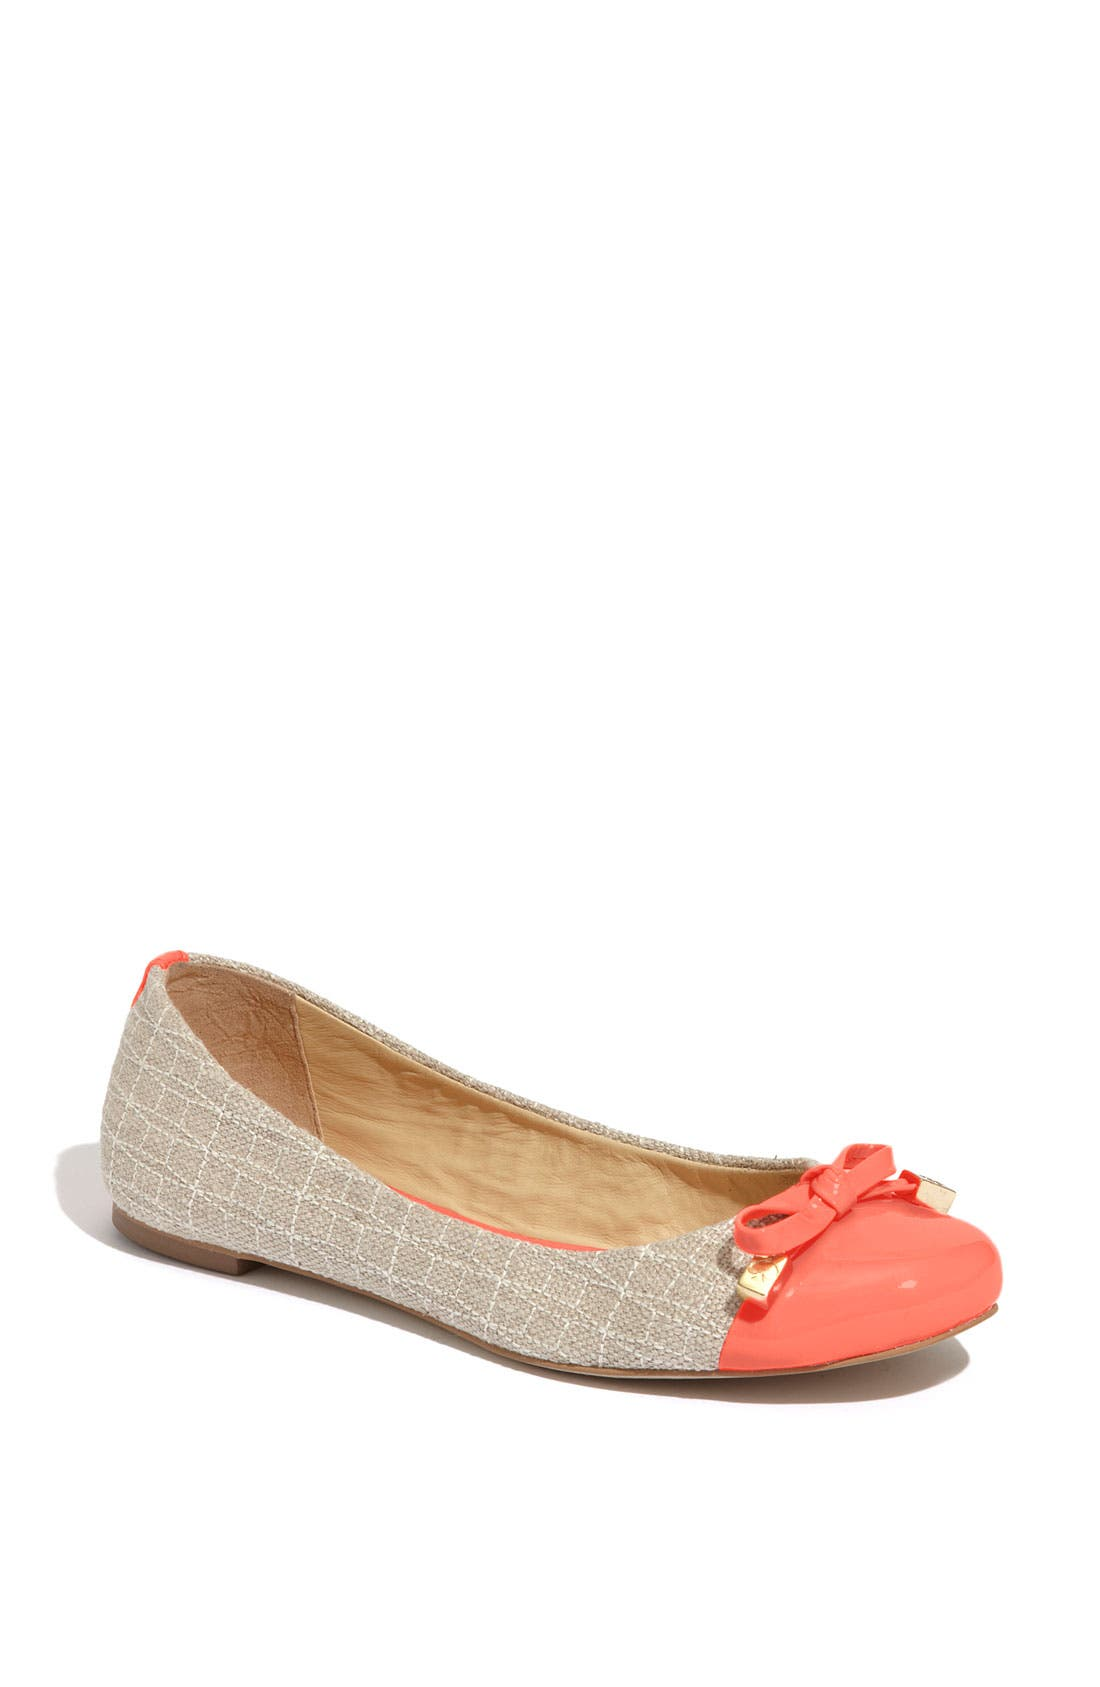 Alternate Image 1 Selected - kate spade new york 'heather' flat